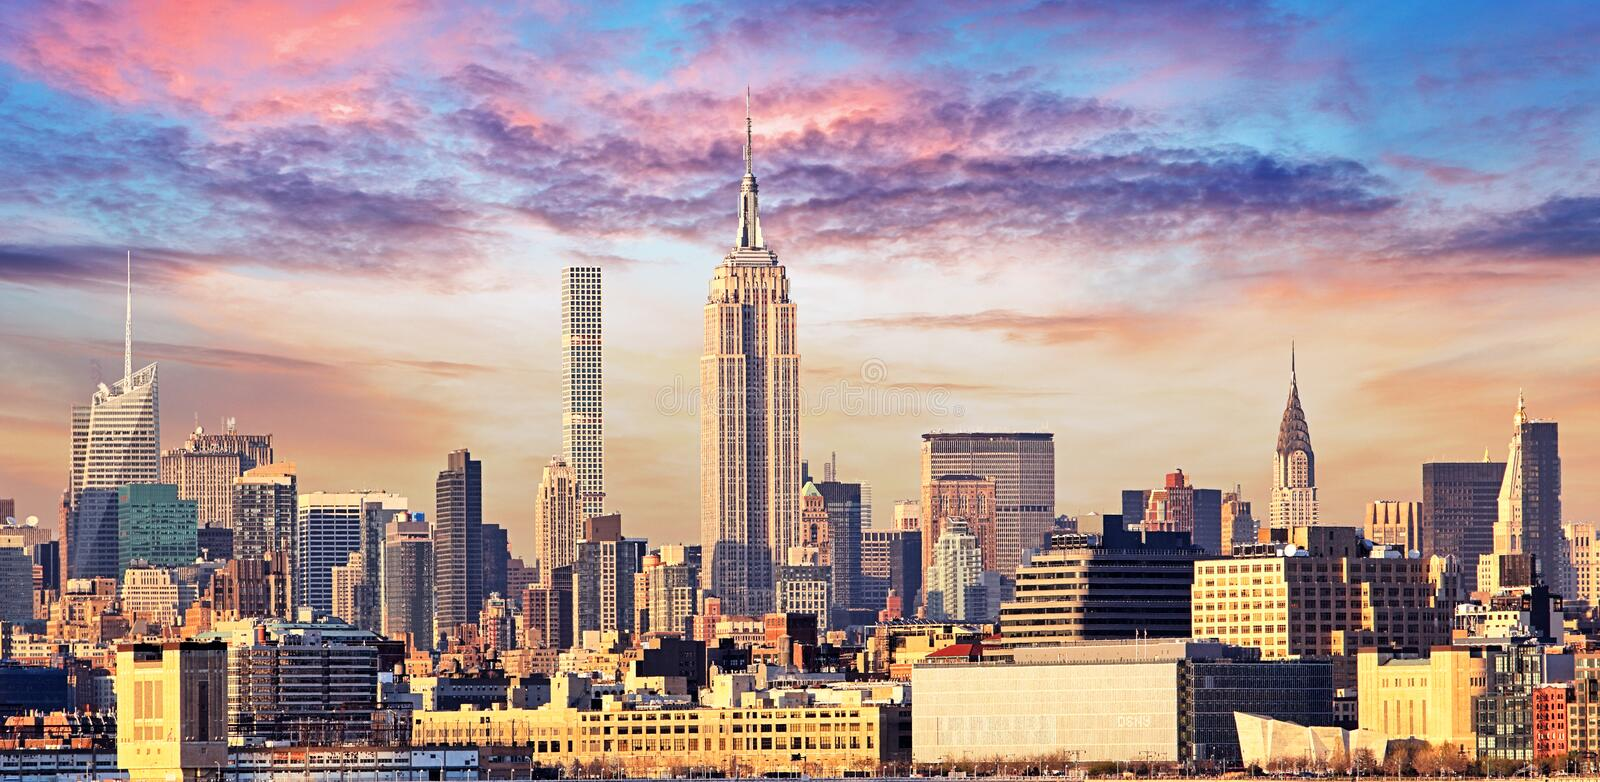 De Horizon van Manhattan met Empire State Building over Hudson River, stock foto's